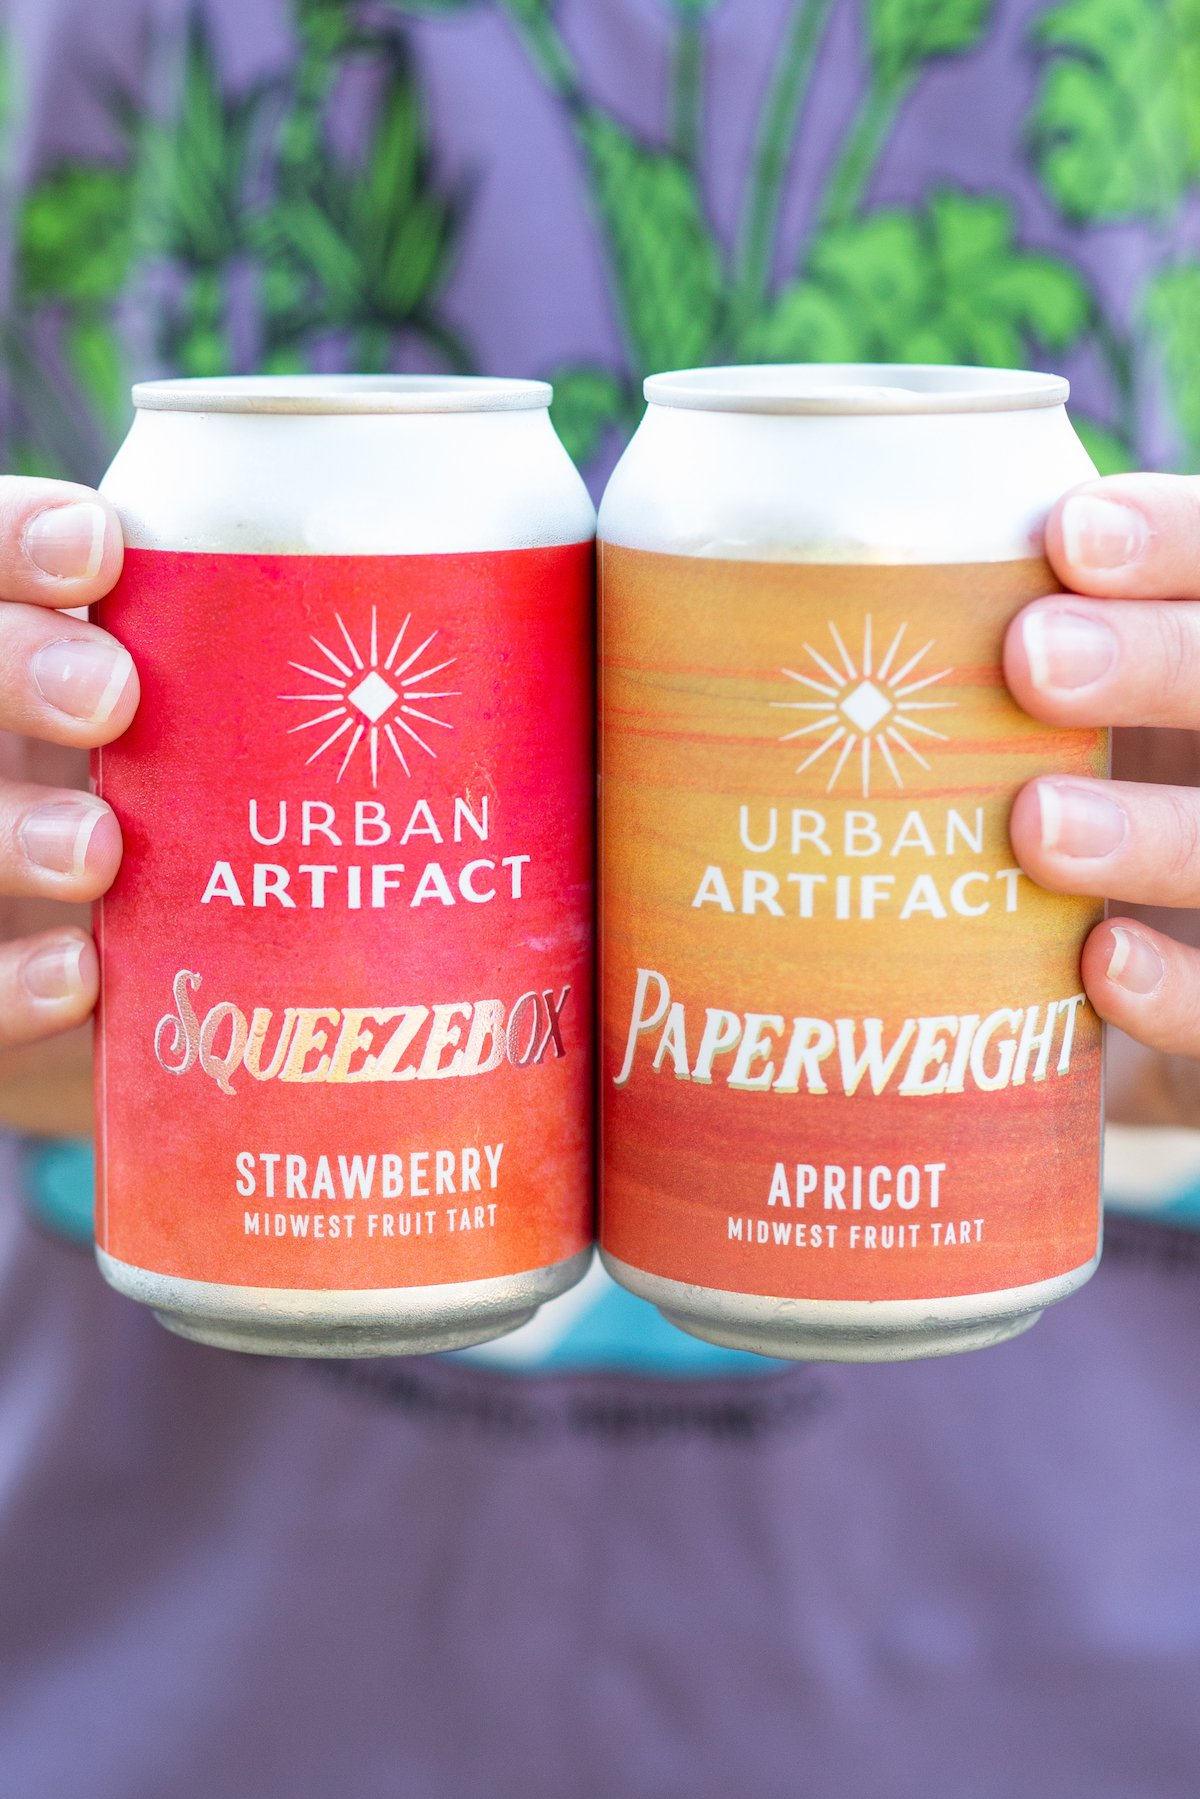 Two hands hold up two cans of Urban Artifact Midwest Fruit Tart sour beers.